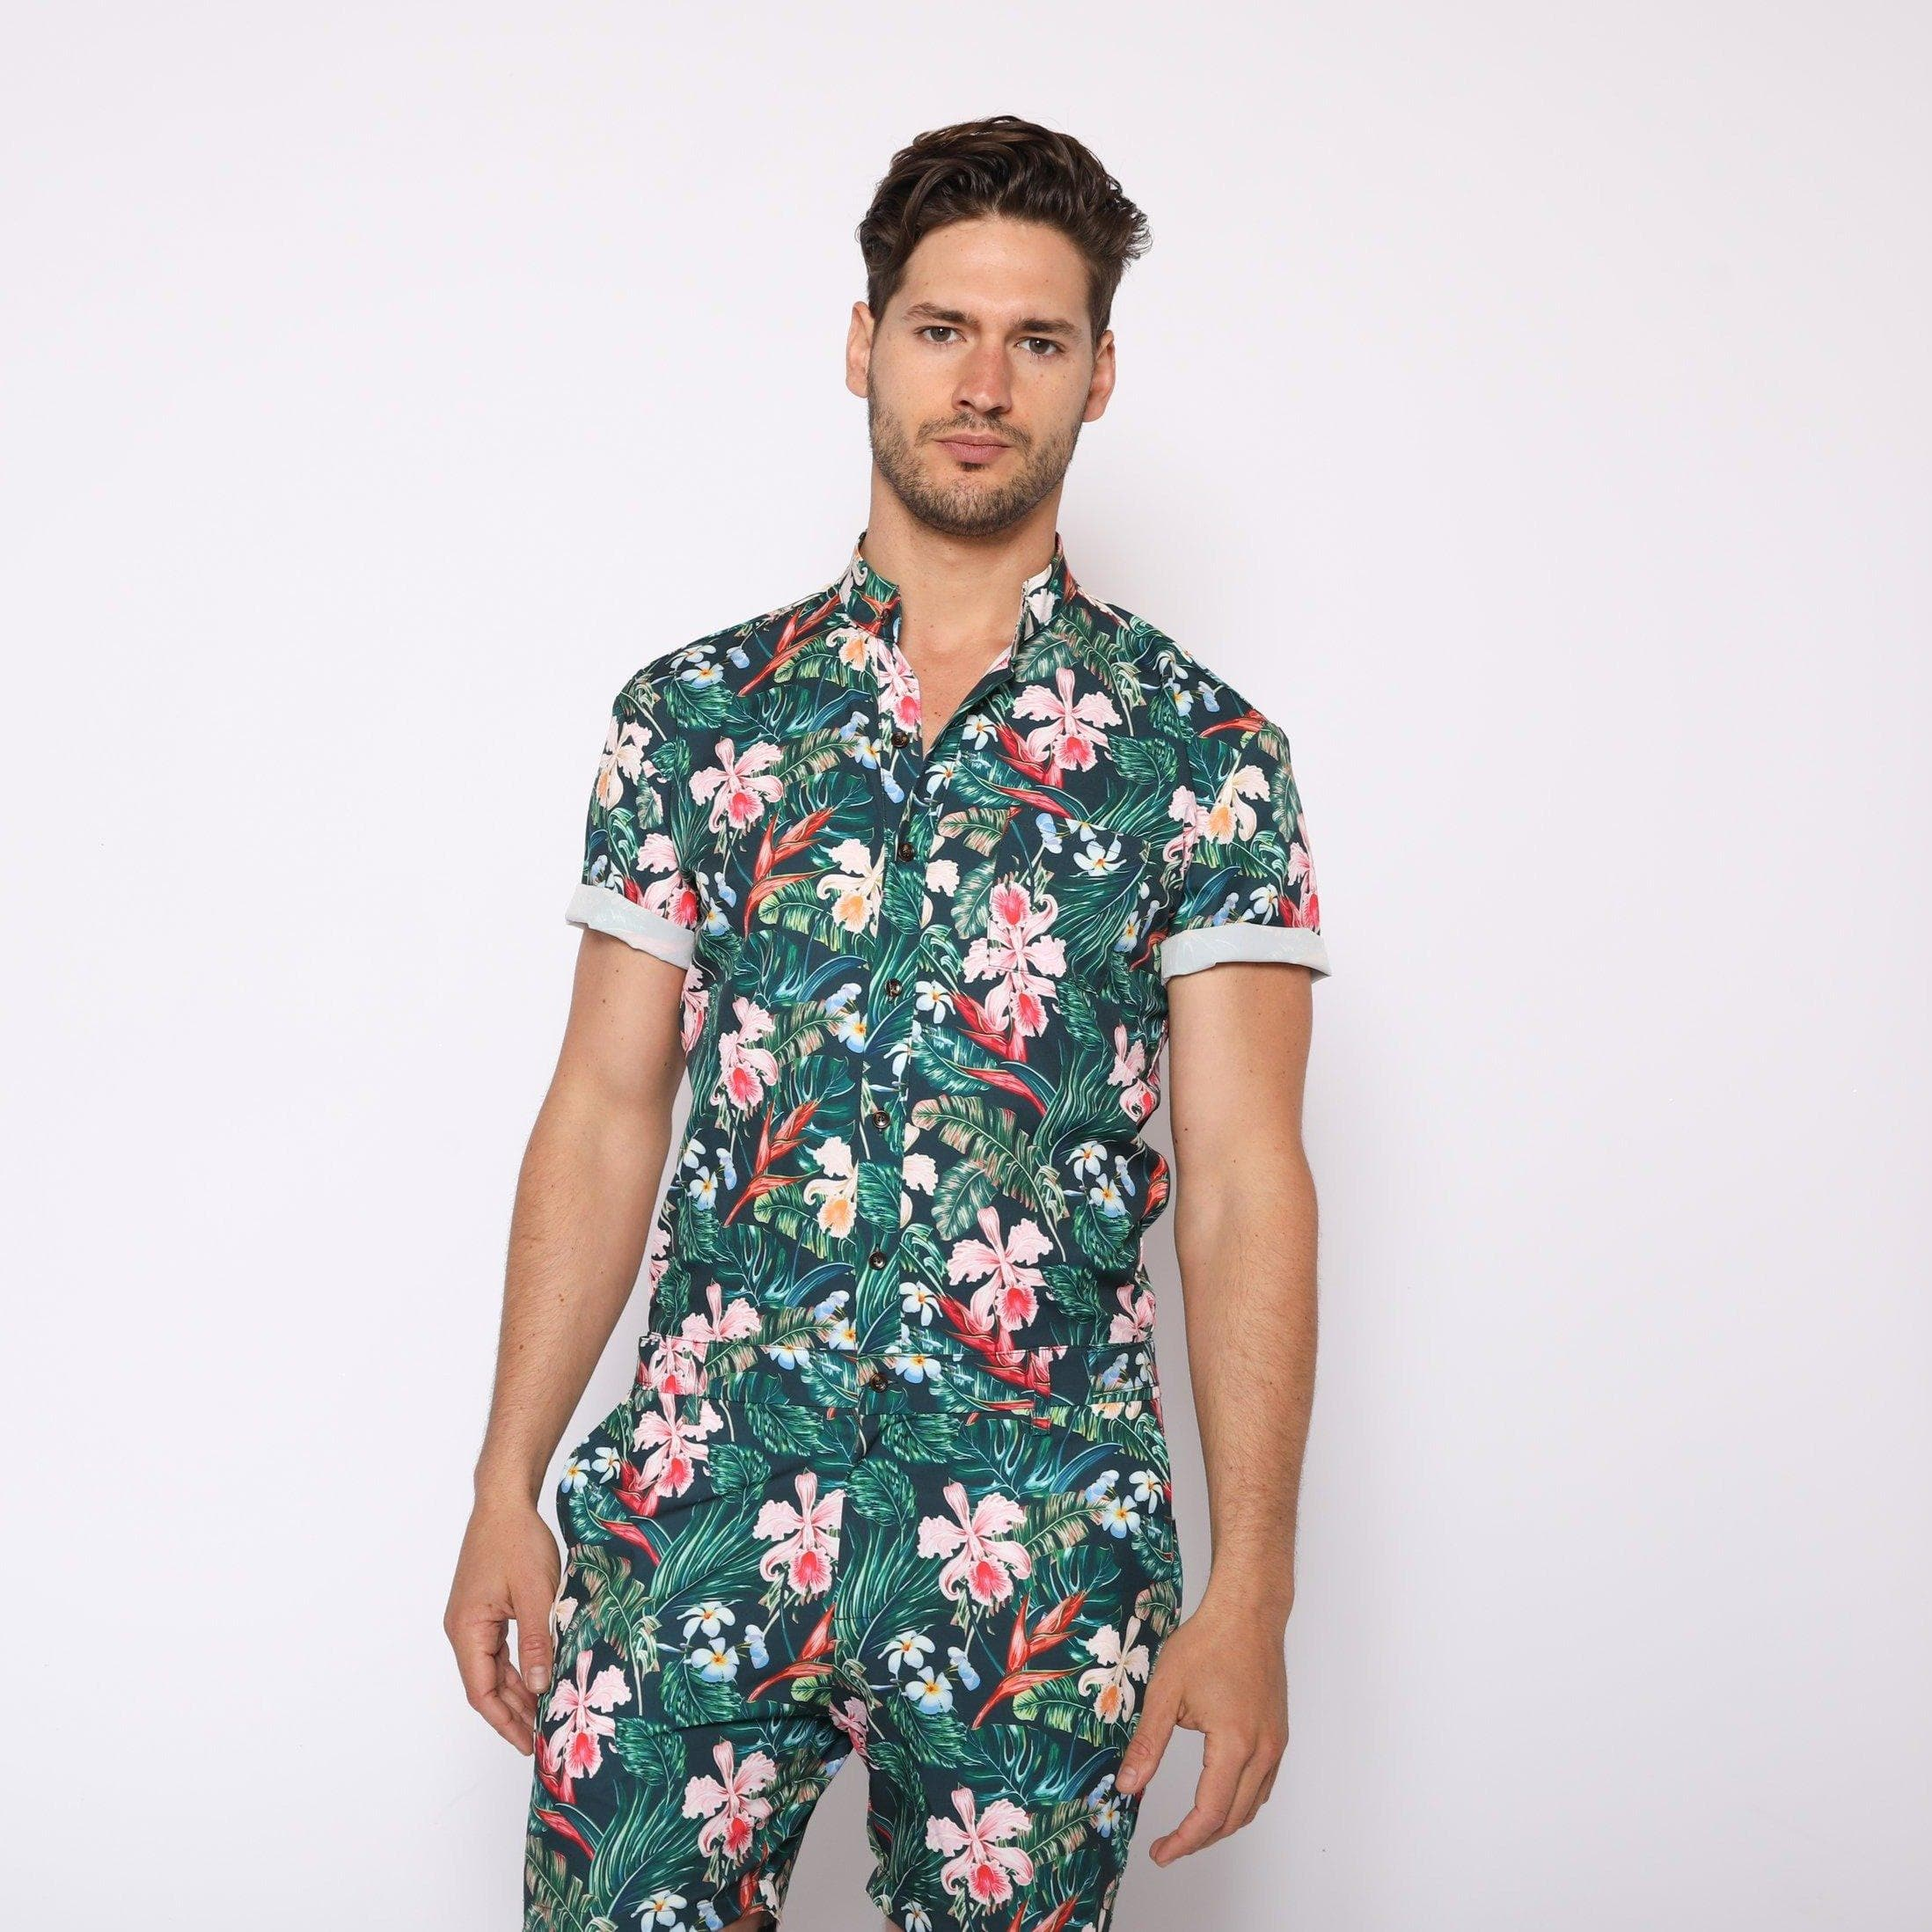 Jungle Print - RomperJack, Mens Romper - Male Romper